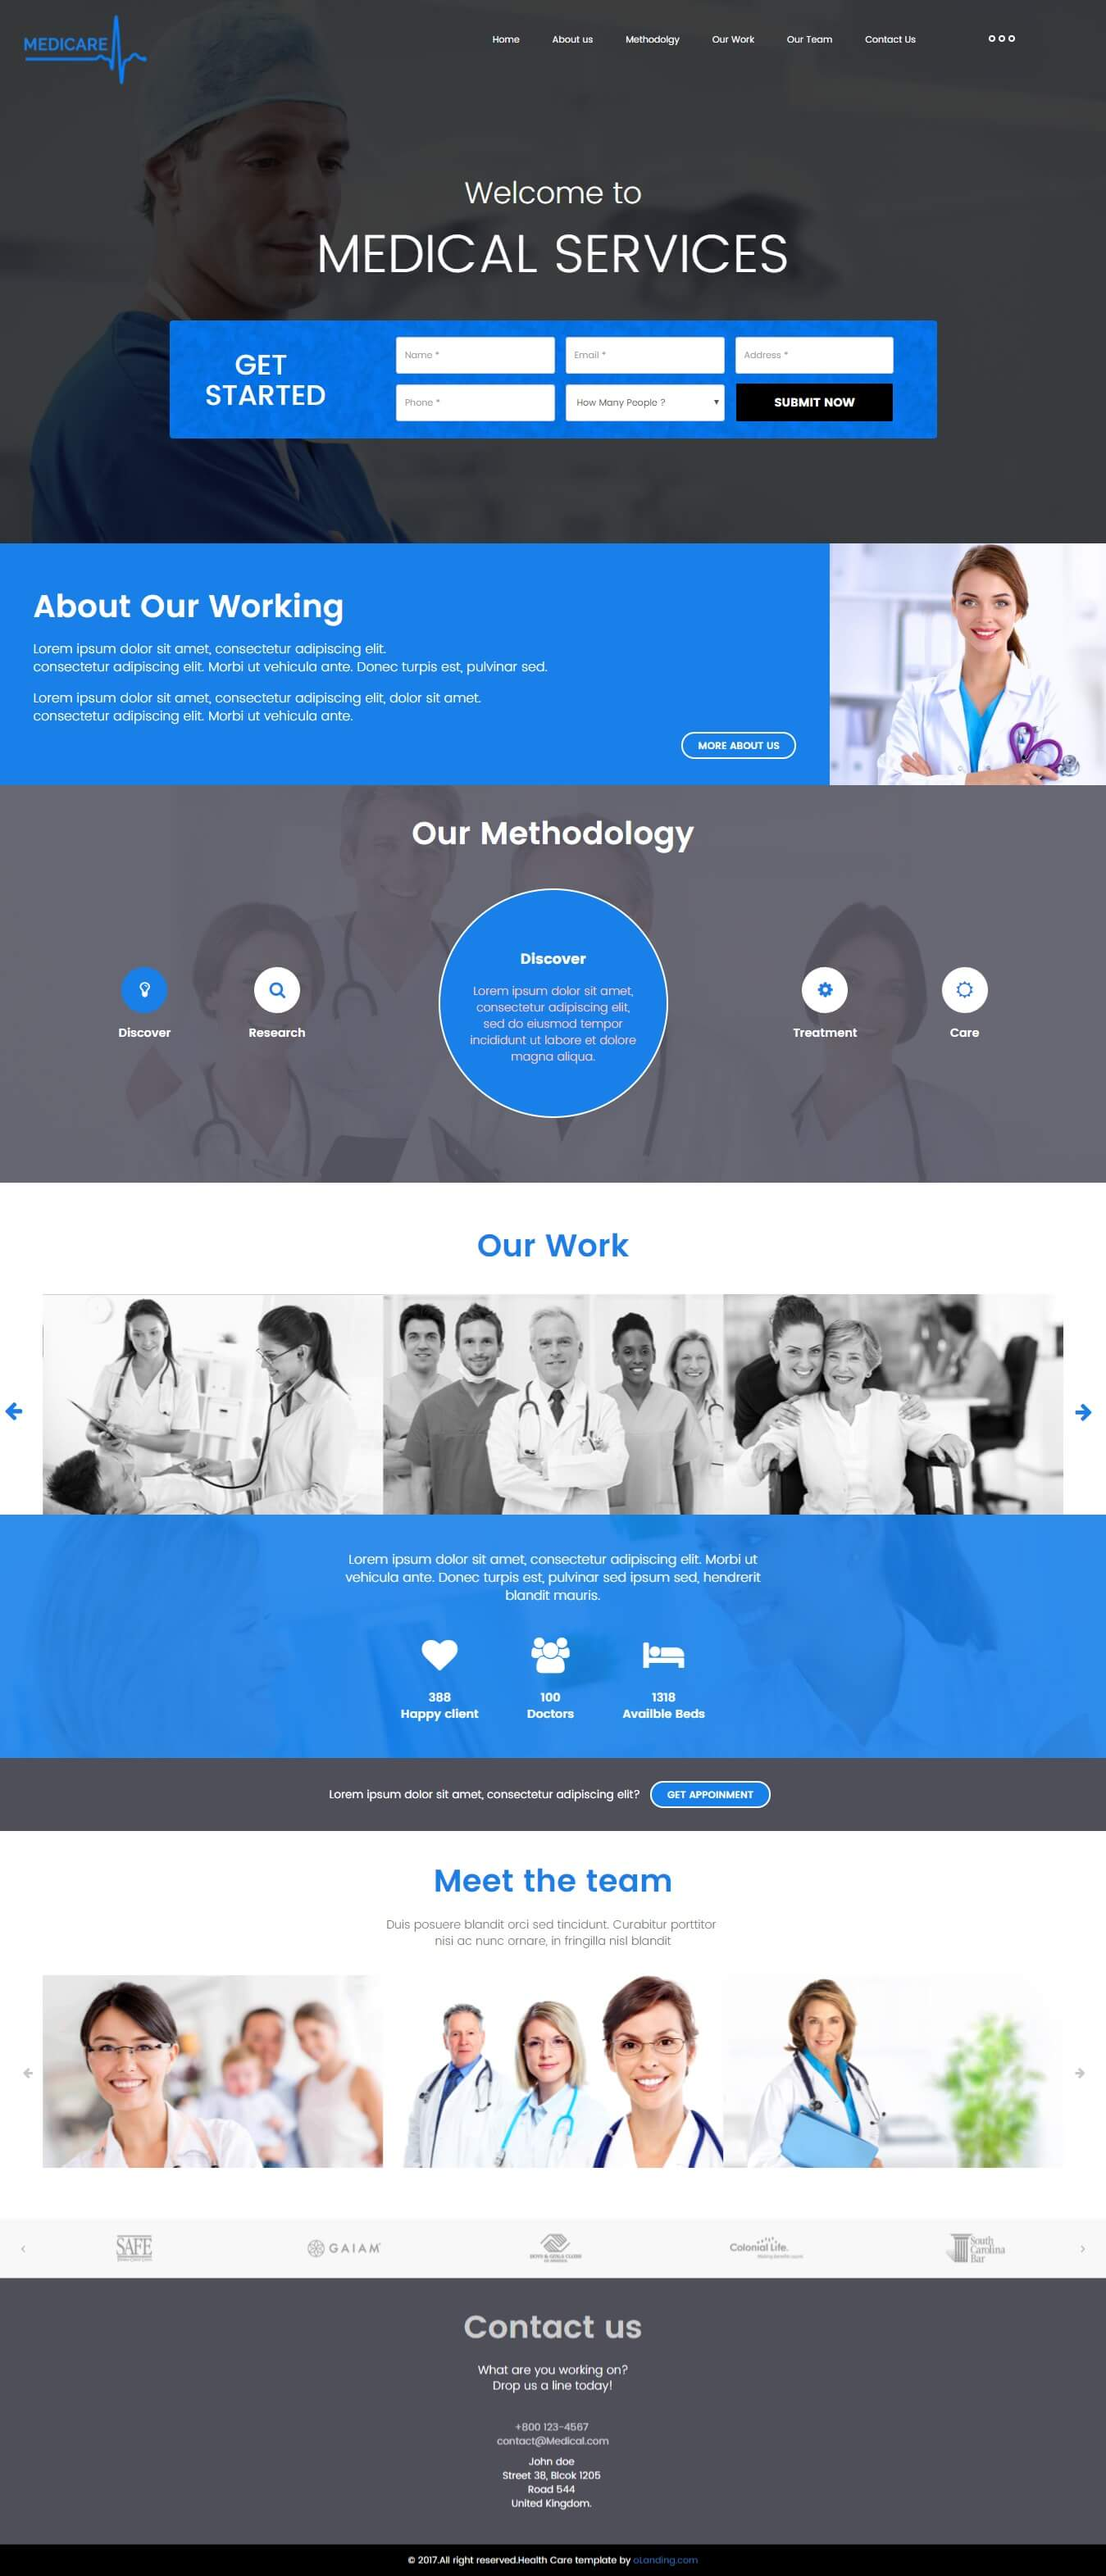 Medical Landing Page Design Template For Help To Promote Your - Medical landing page template